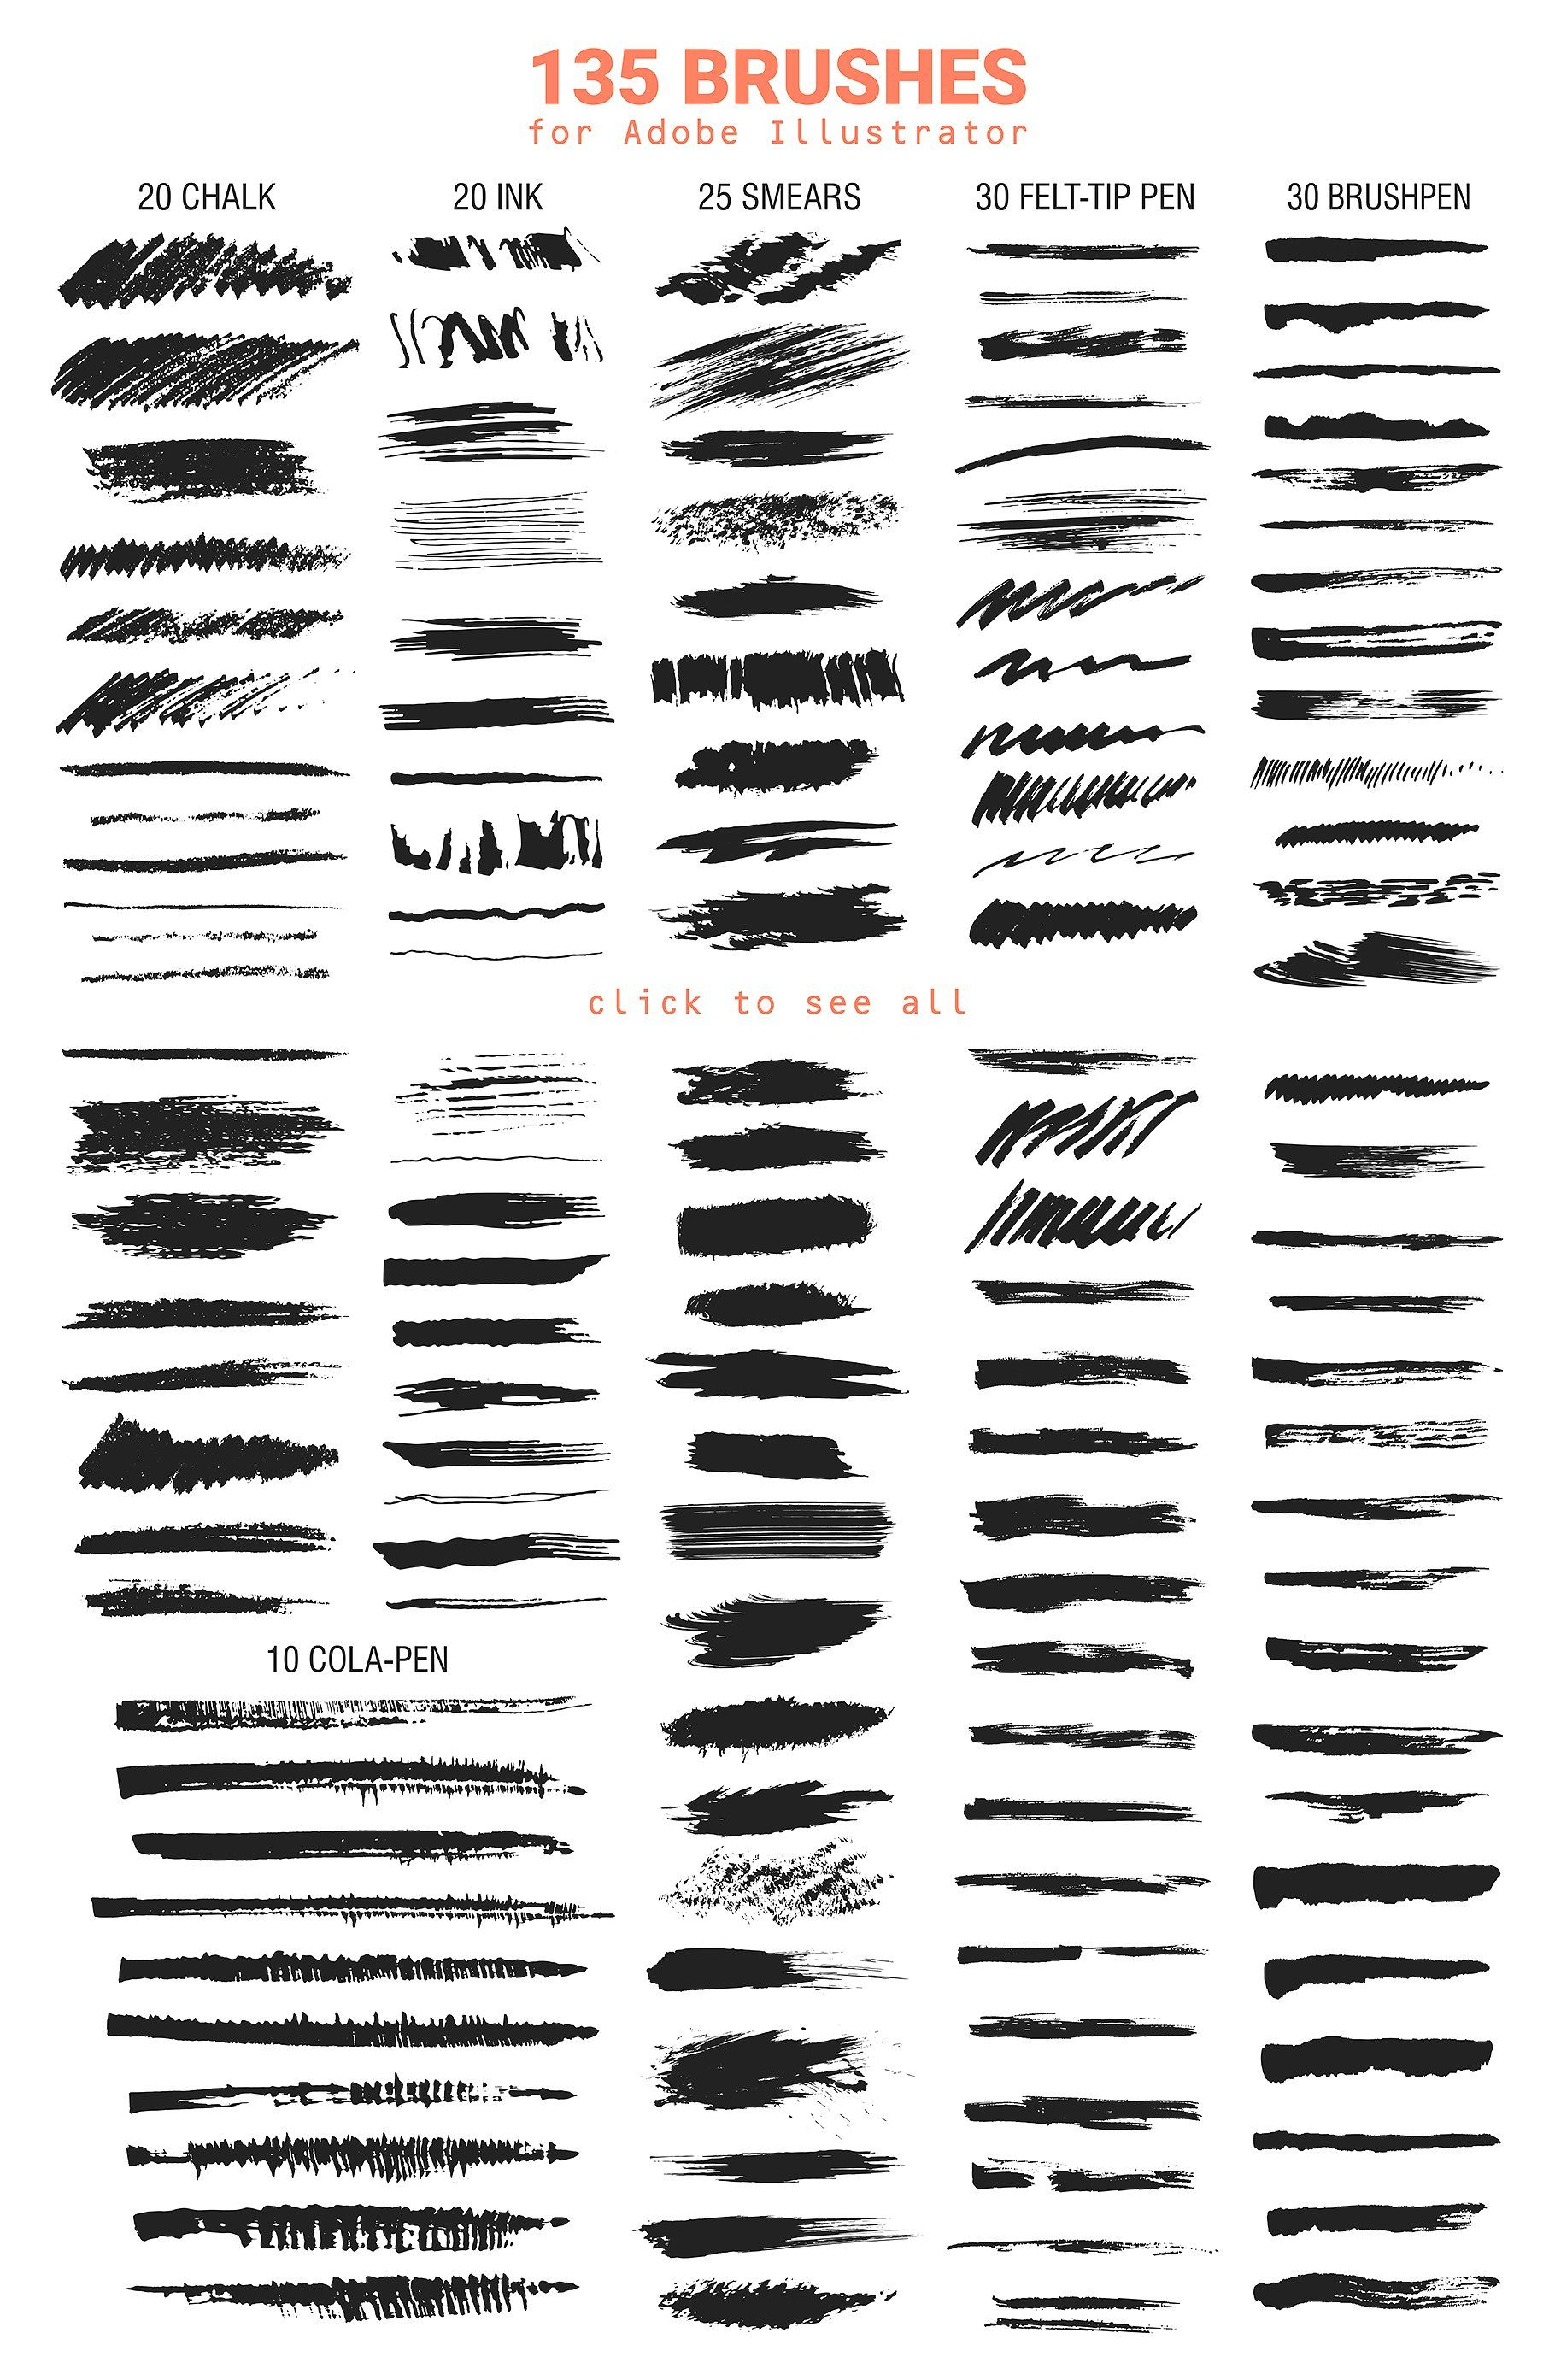 51 Free Vector Brushes Vector Brush Vector Free Illustration